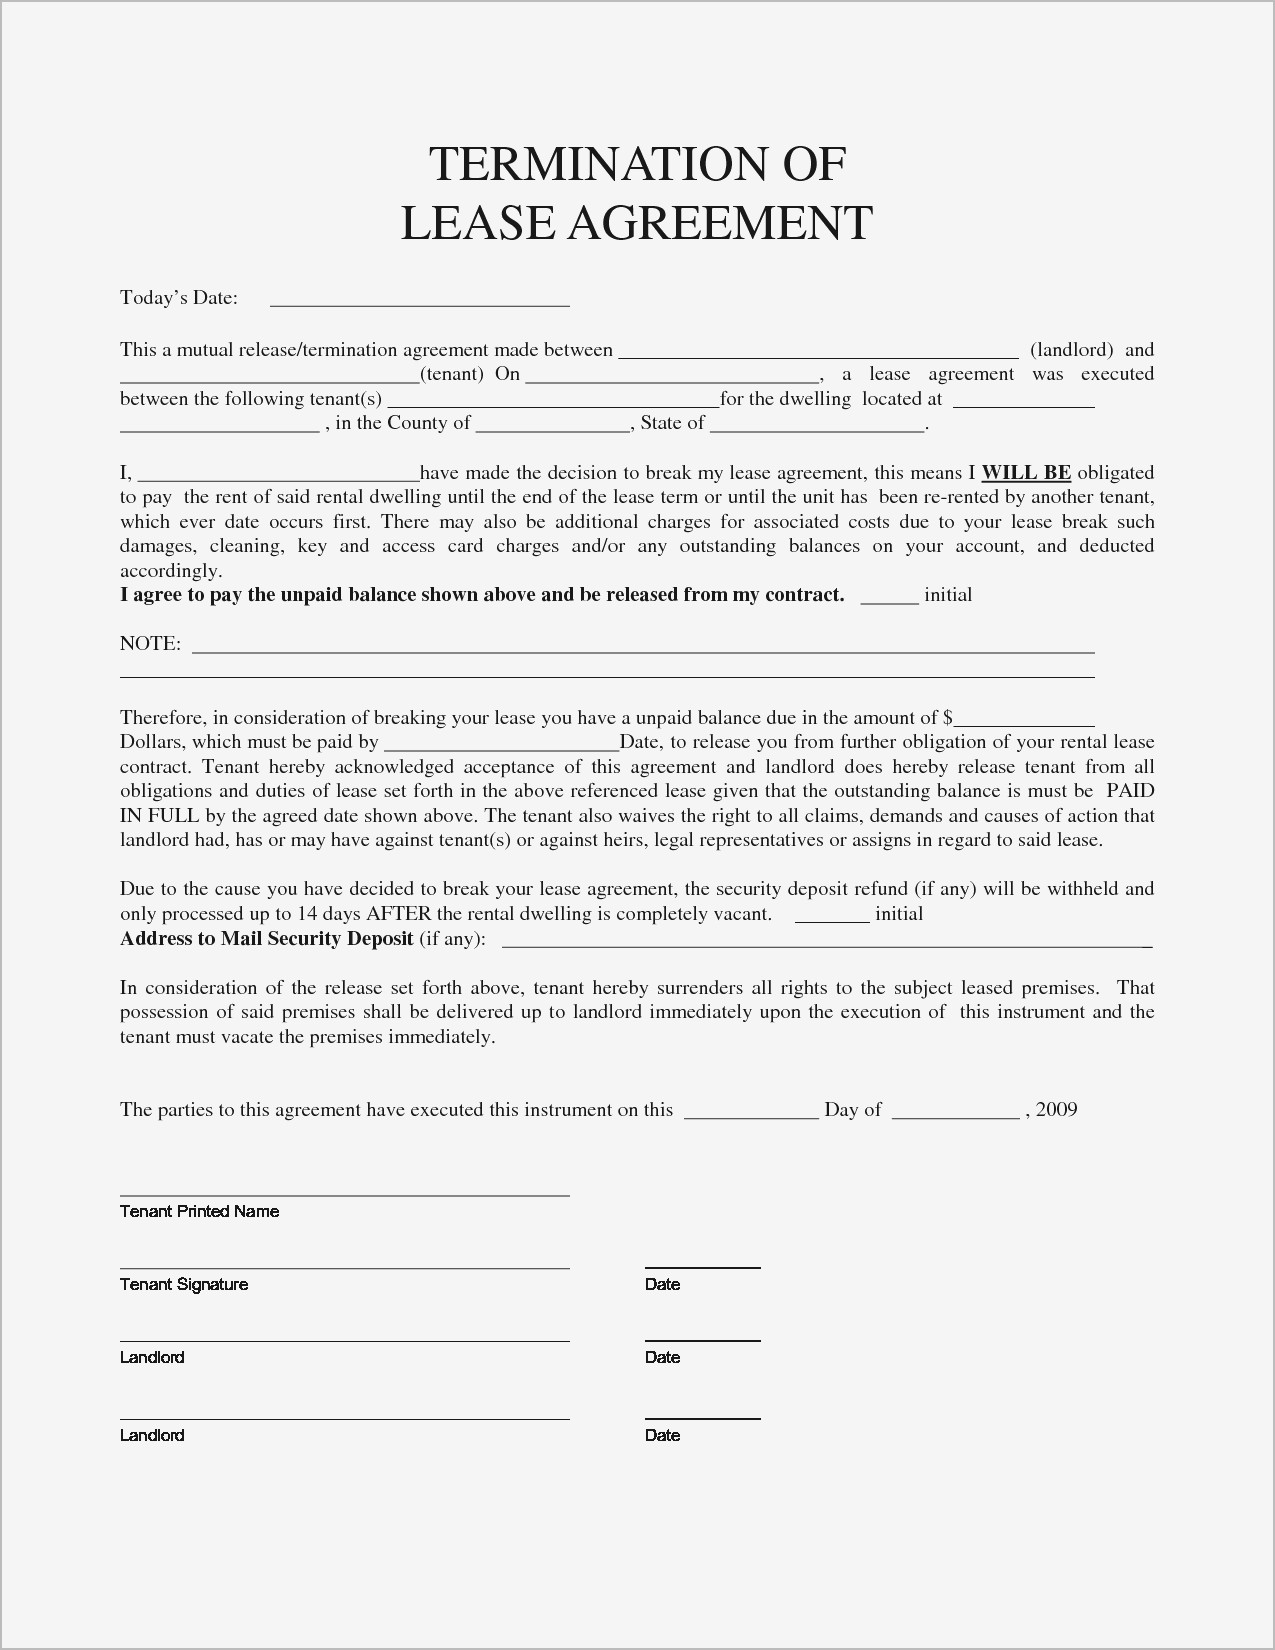 breaking lease agreement letter template example-Personal Property Rental Agreement Forms 8-g